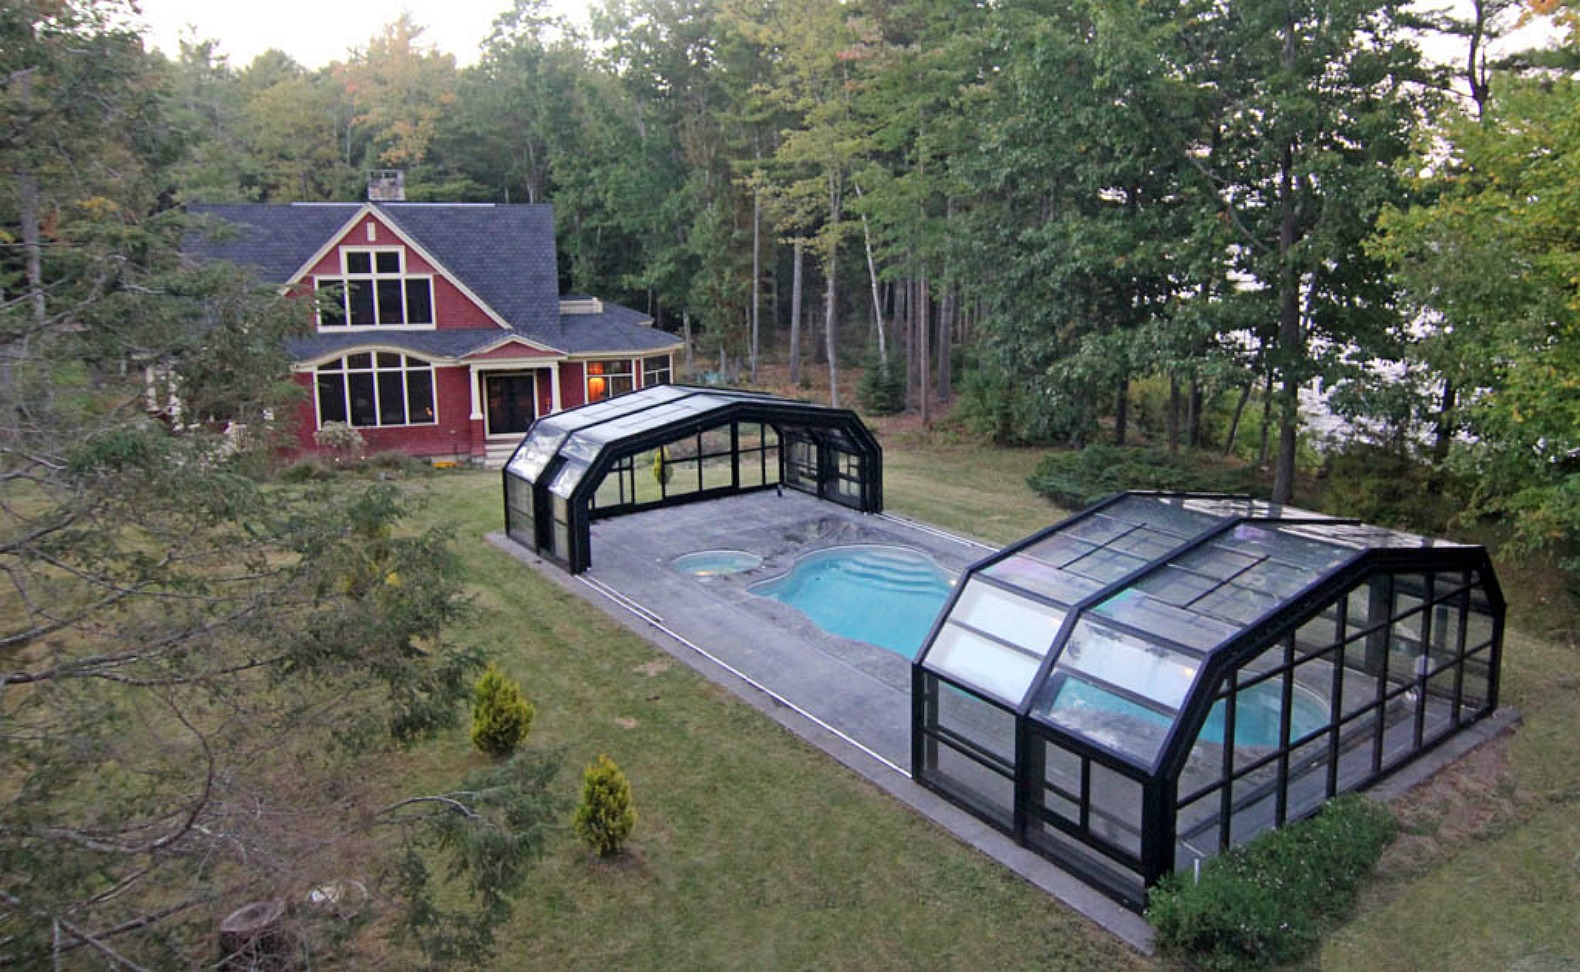 This amazing retractable roof shelters a pool in Maine for year-round fun